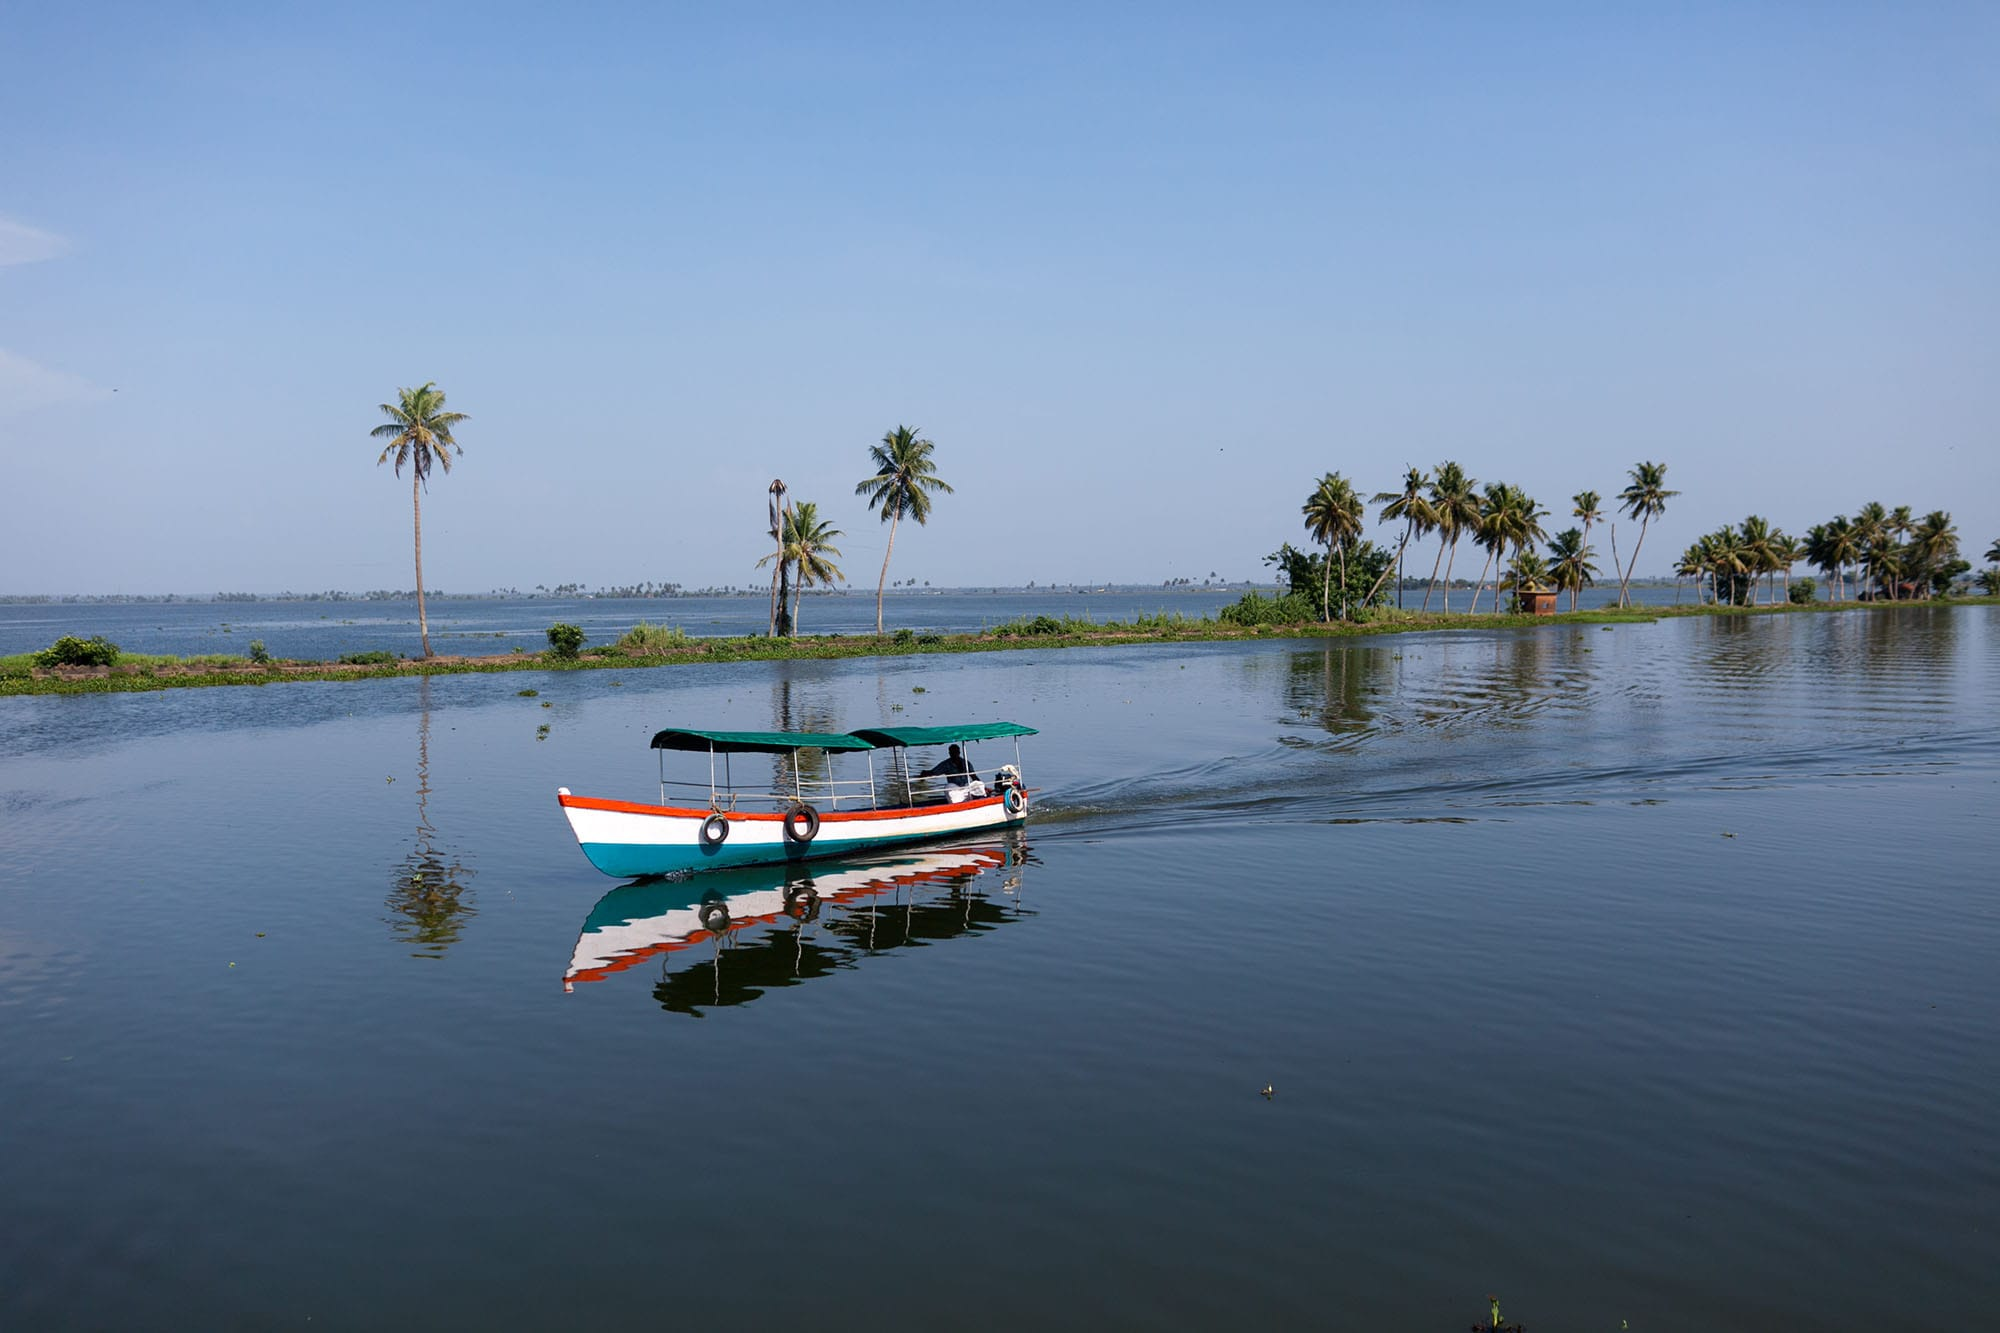 Renting a house boat on the backwaters in Kerala, India.